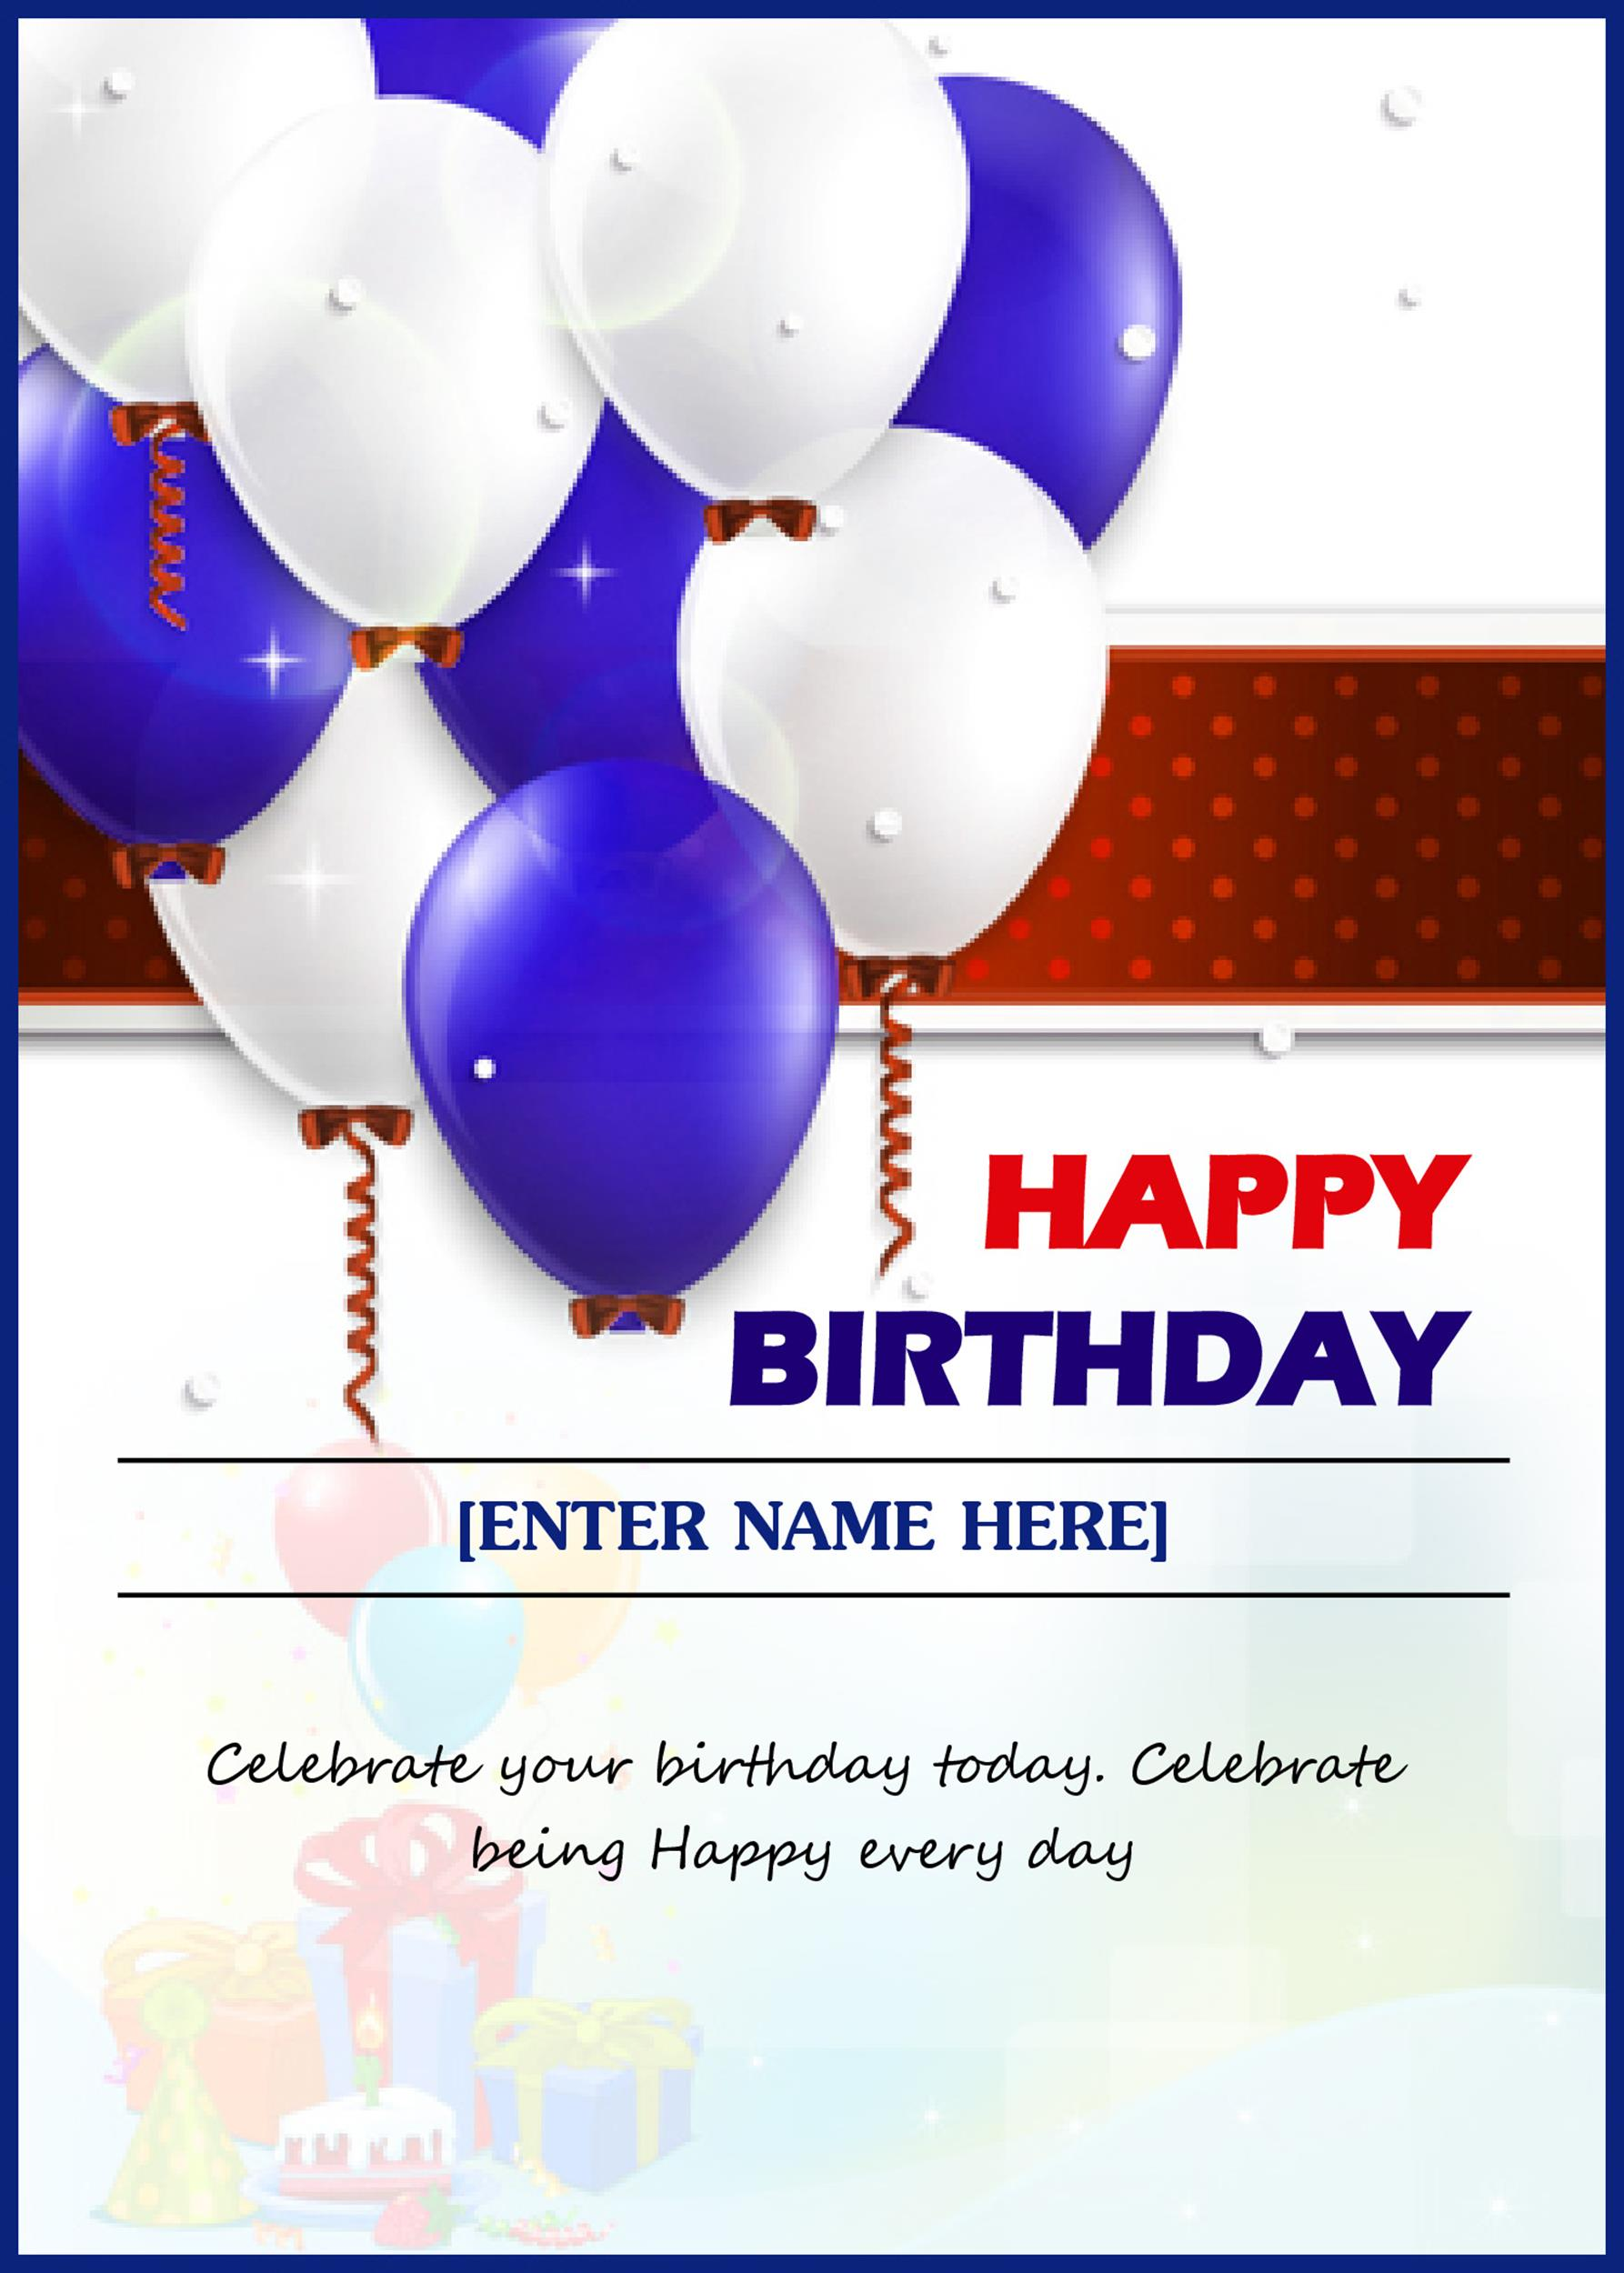 Free birthday card template 17